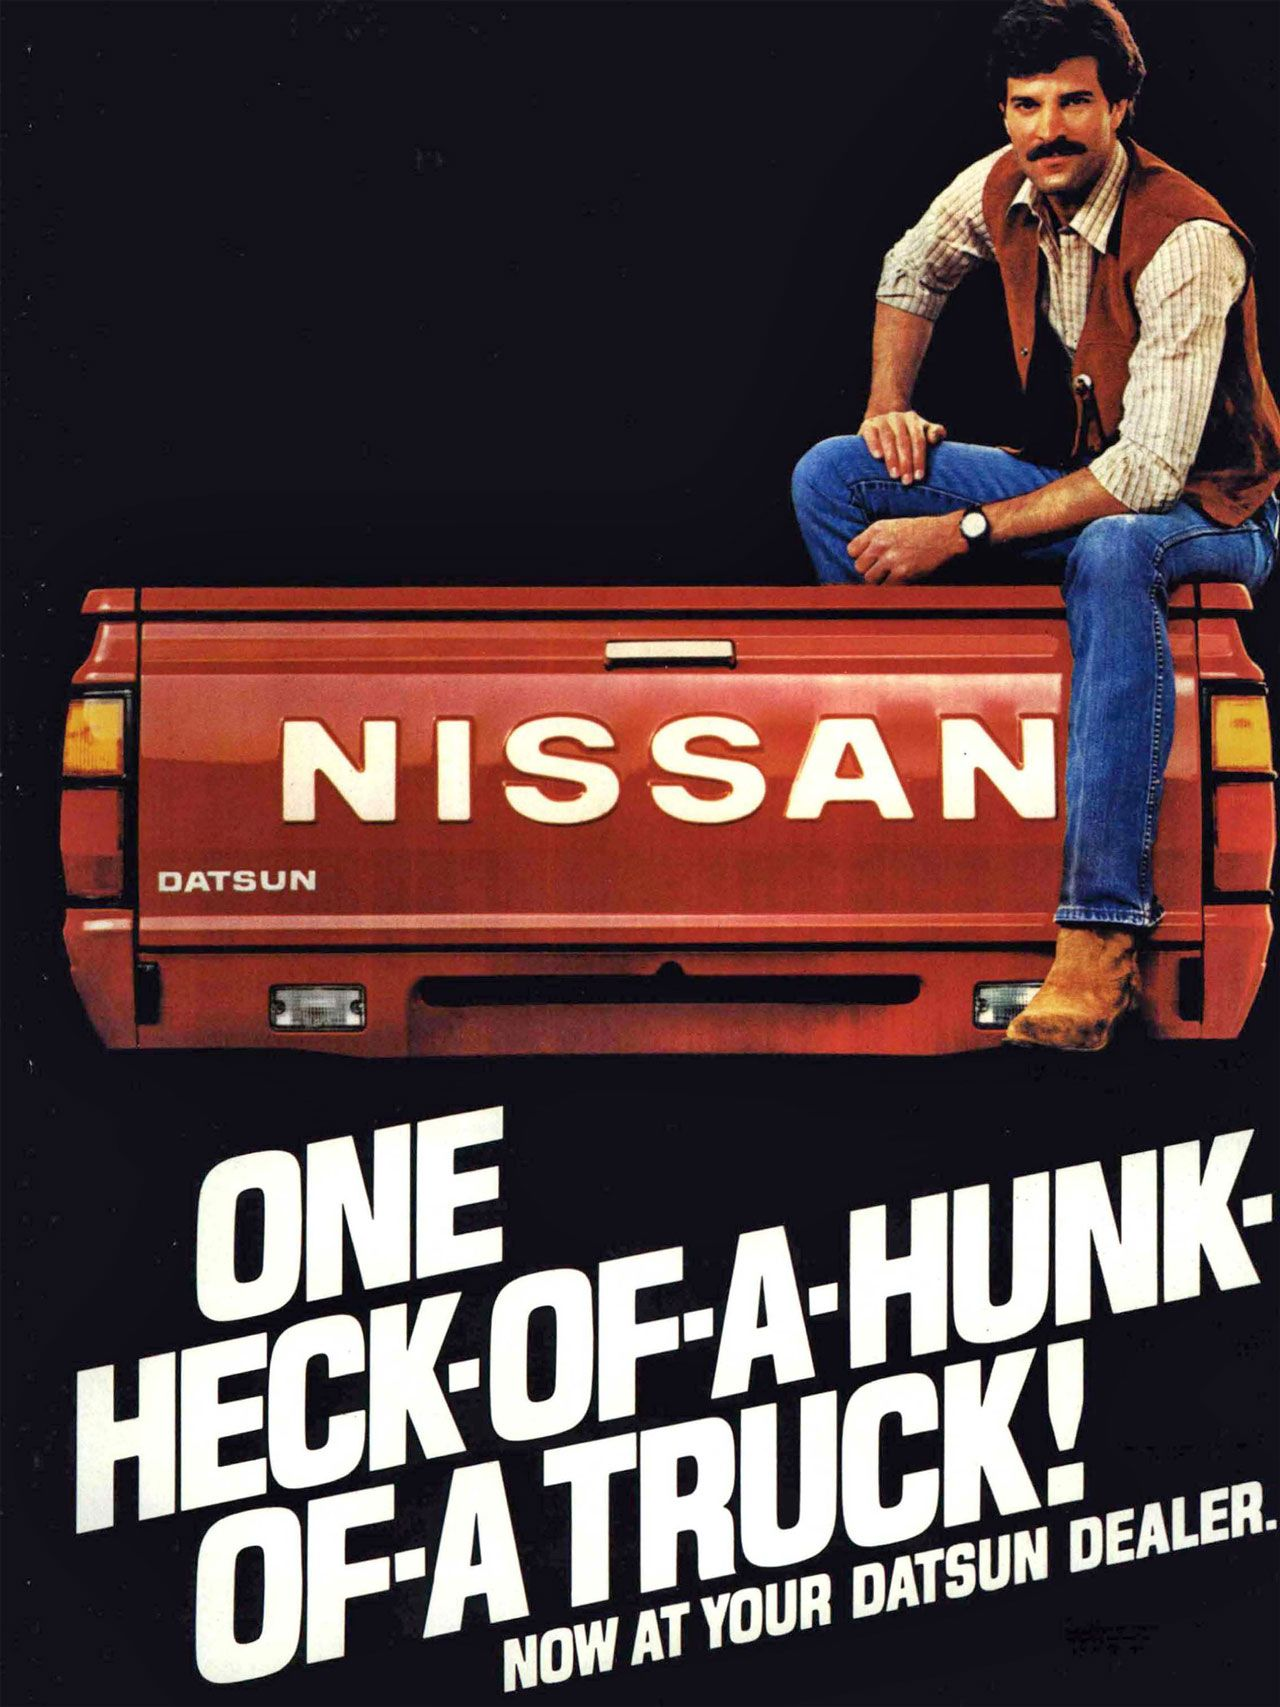 Nissan. One heck-of-a-hunk-of-a truck! Now at your Datsun dealer.